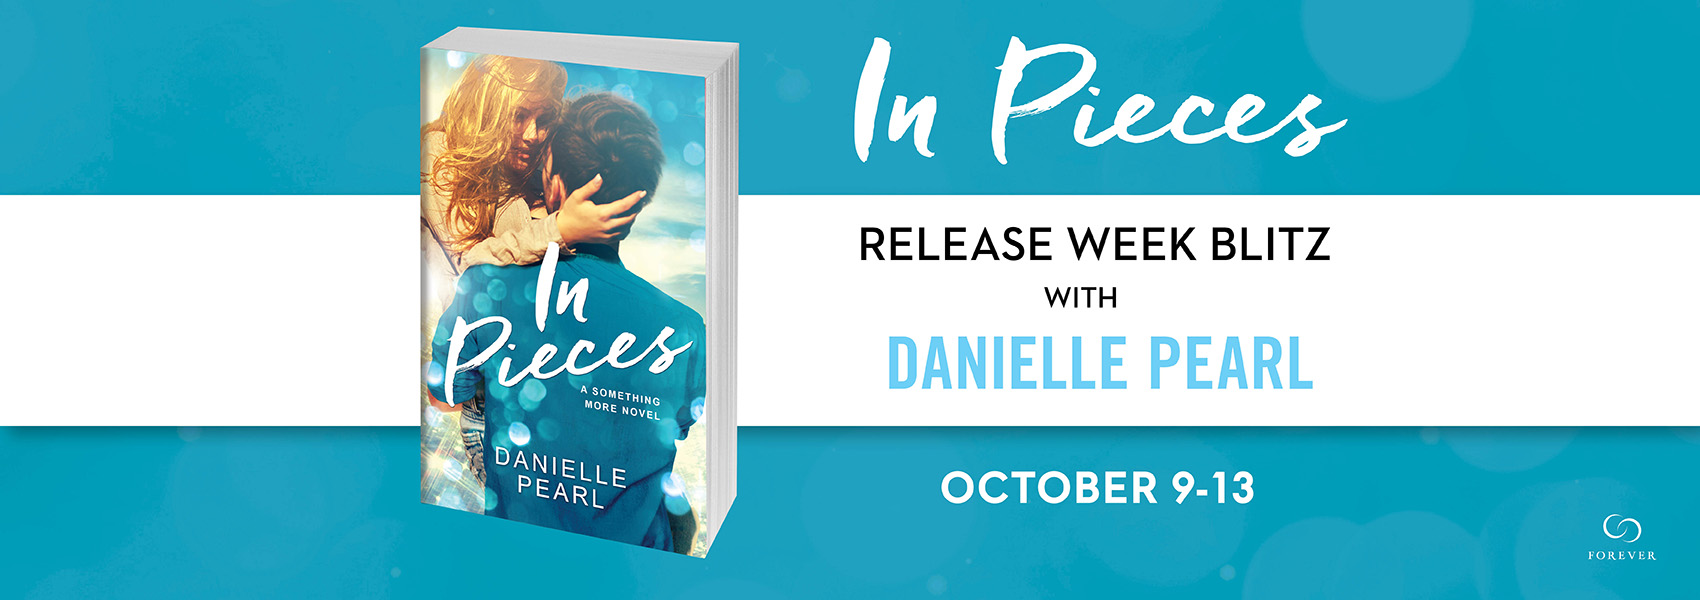 Win 1 out of 10 copies of IN PIECES (paperback)!